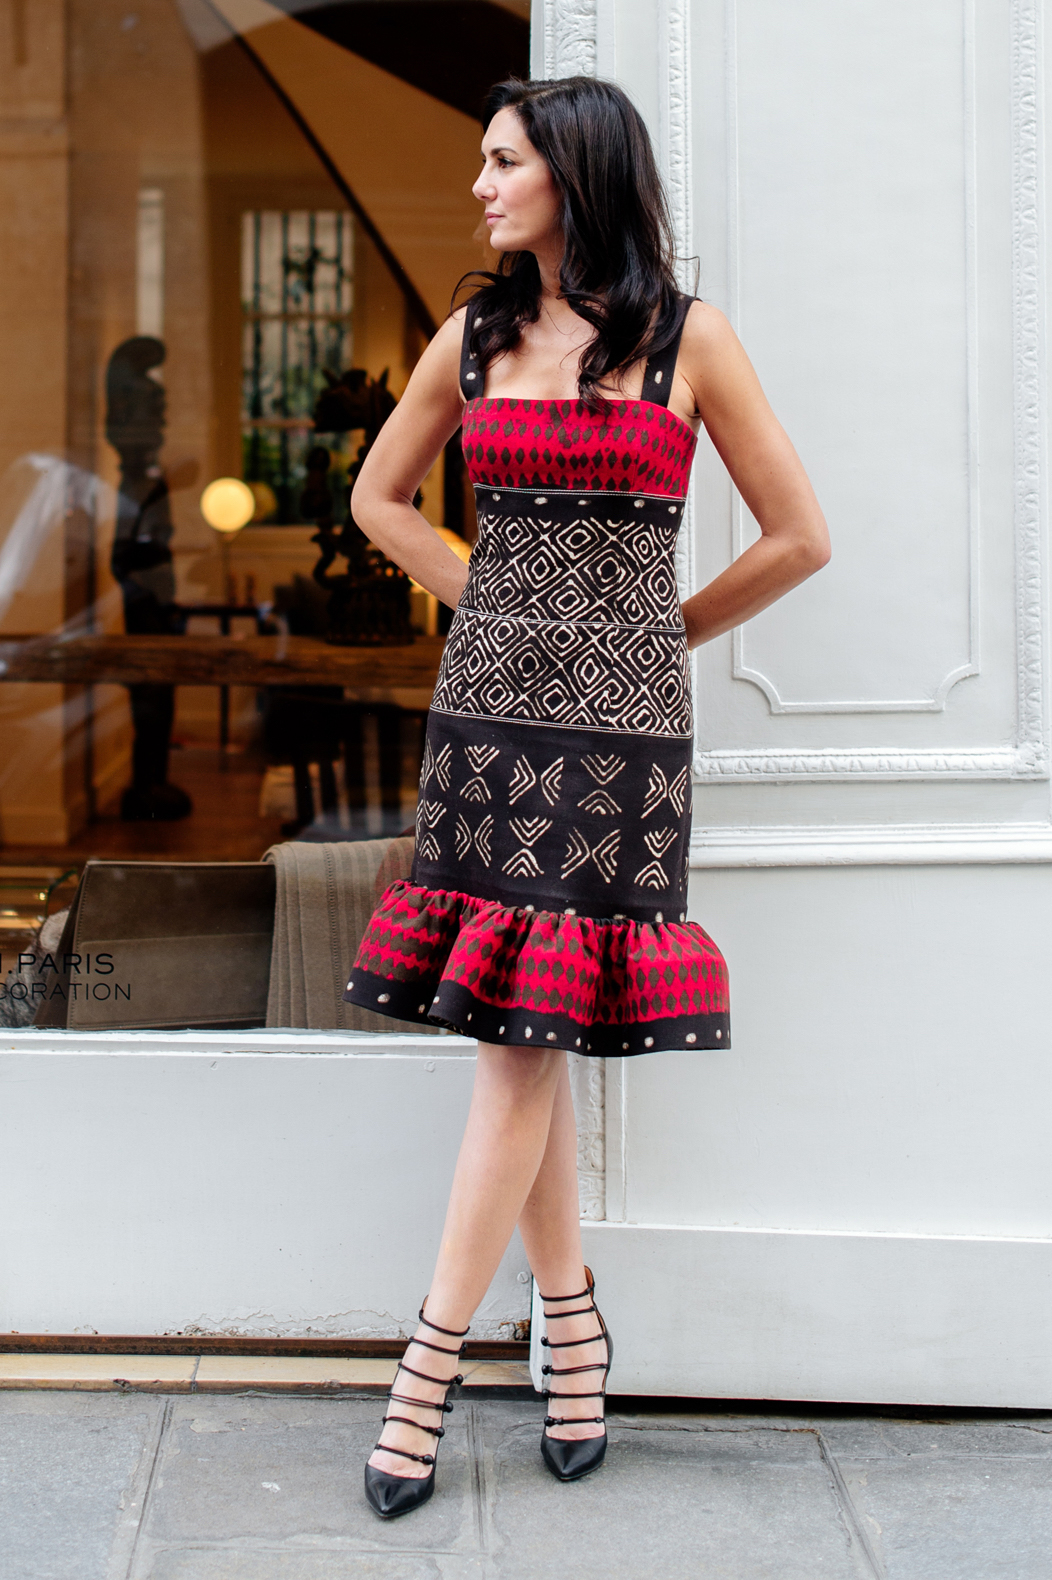 Oscar de la Renta cotton/canvas ethnic print dress